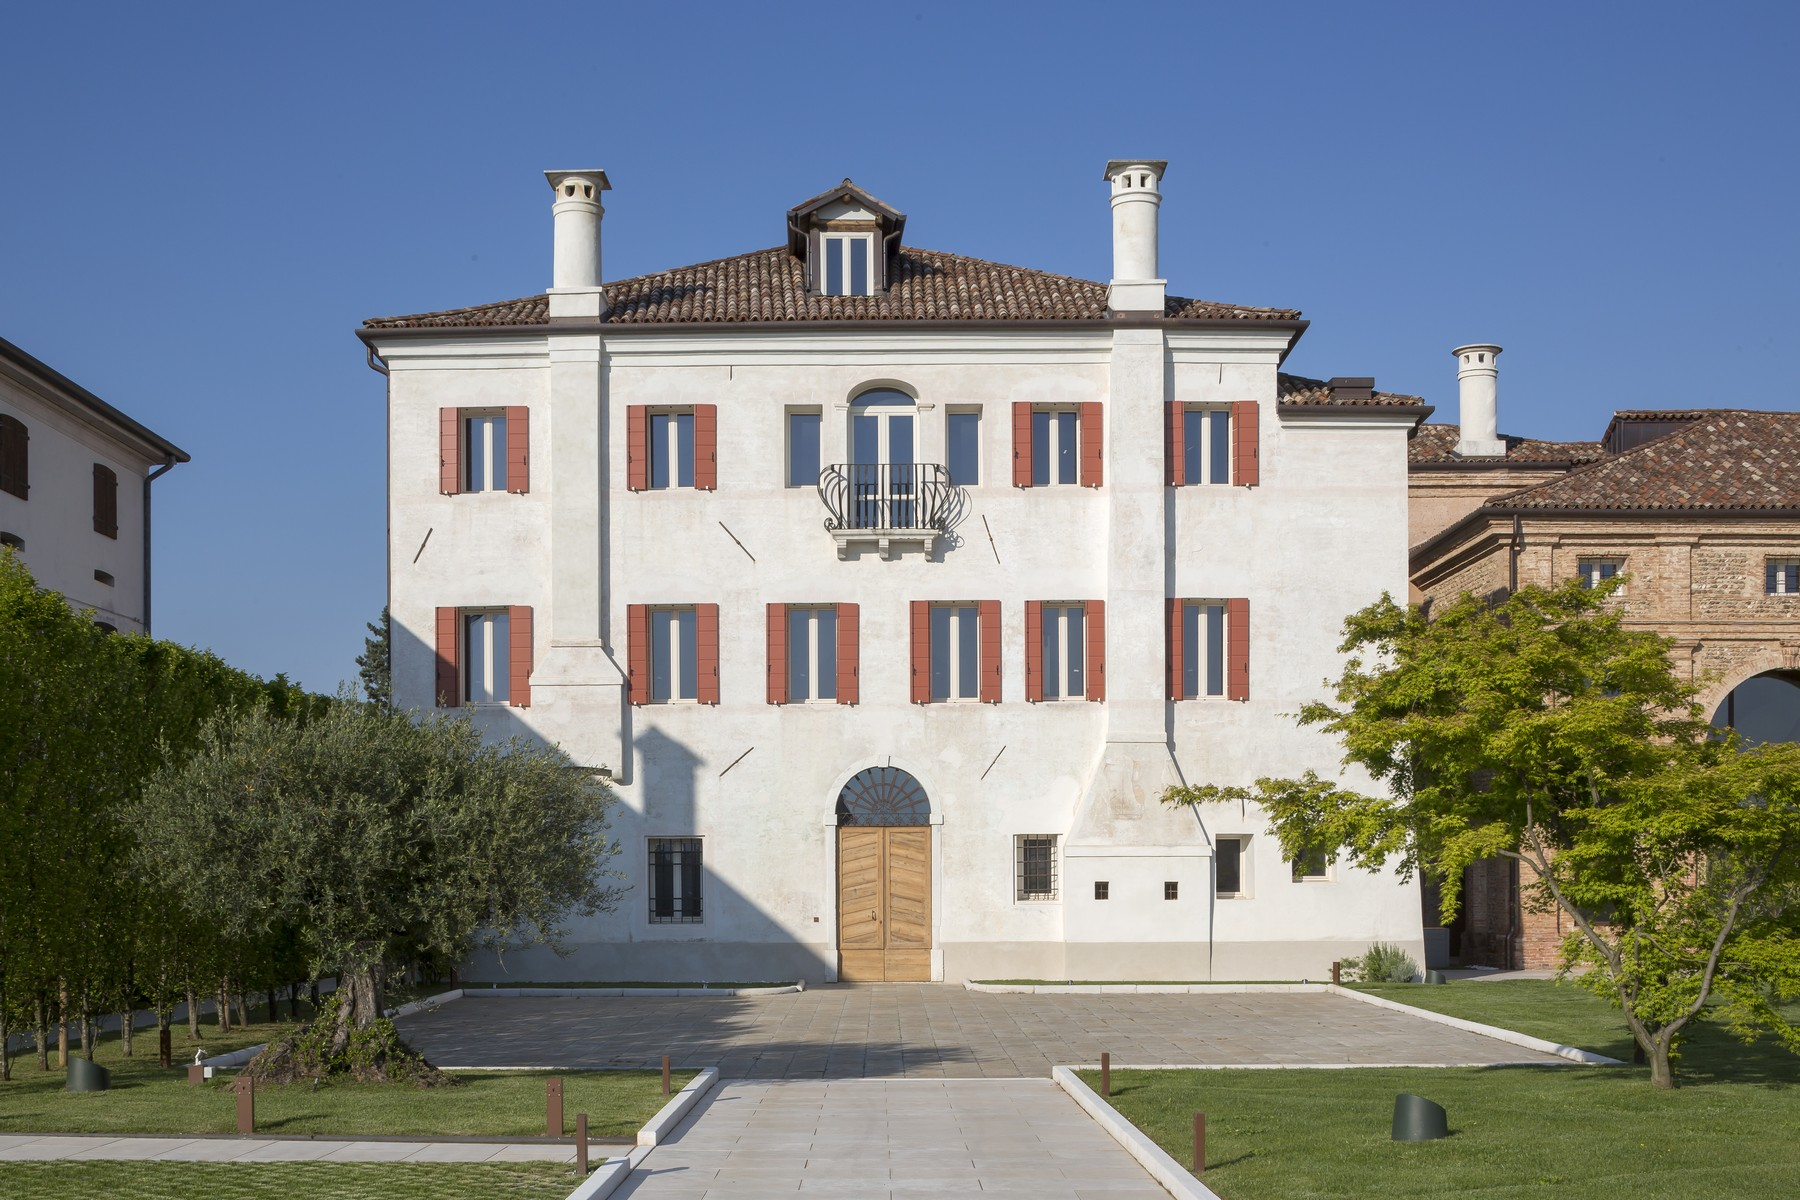 Additional photo for property listing at Exclusive historical property Via Cornarotta Other Treviso, Treviso 31040 Italy